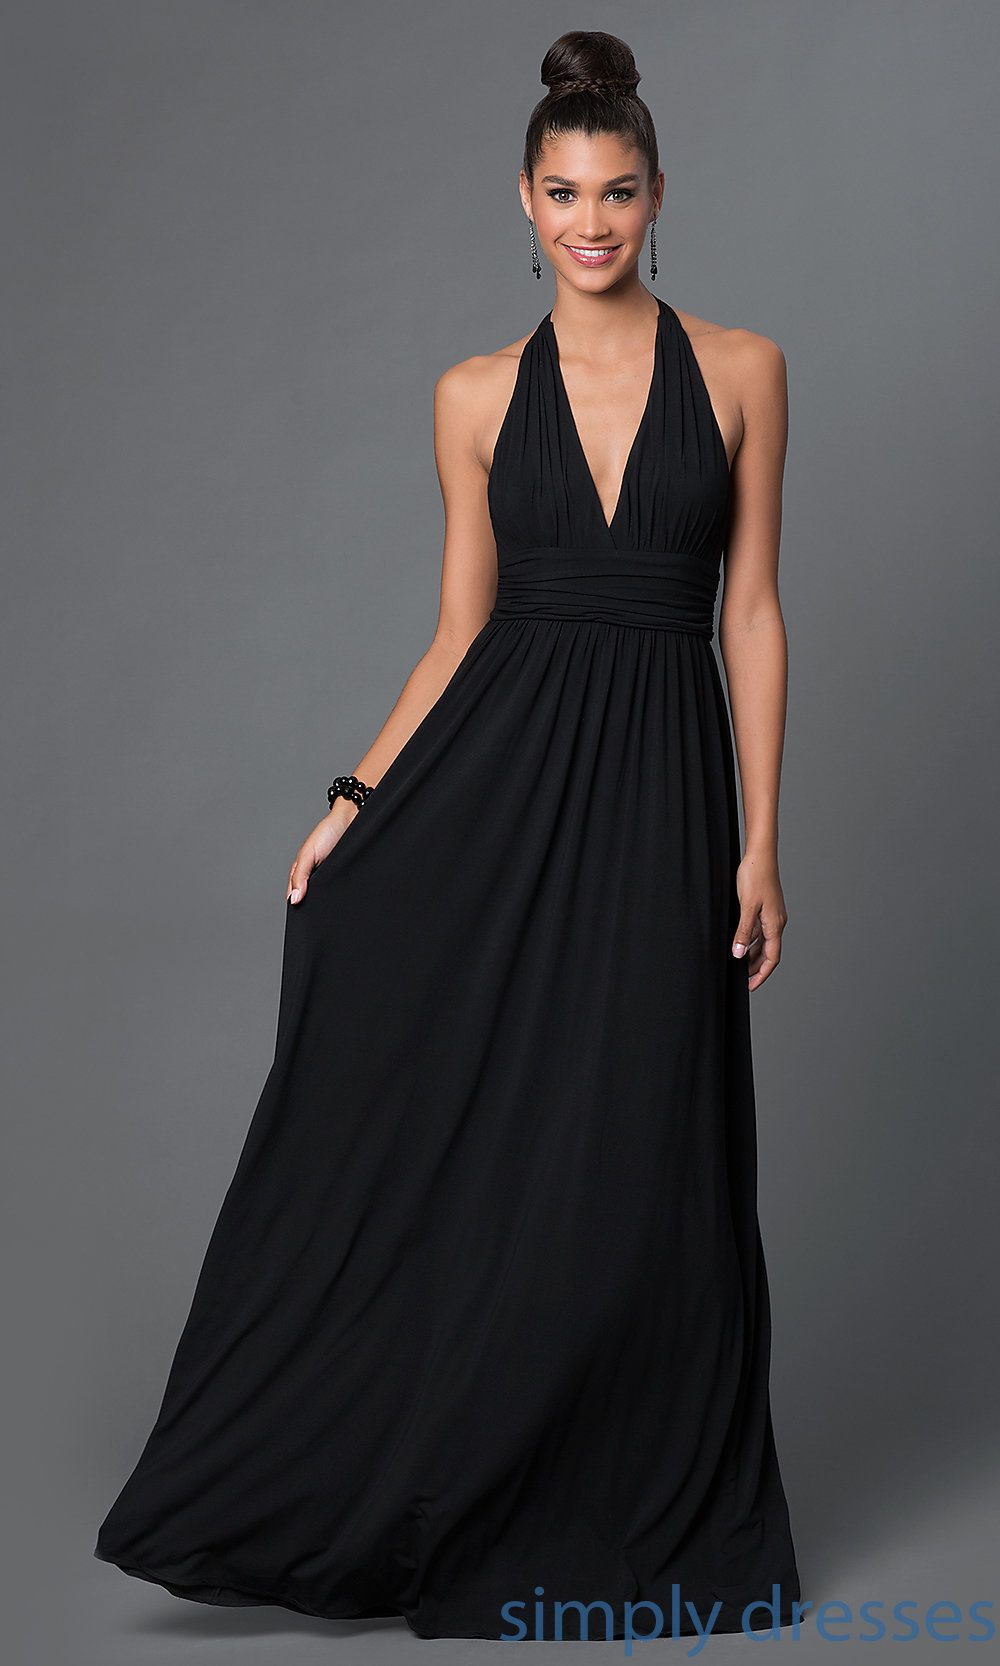 Long Black Formal Halter Dress